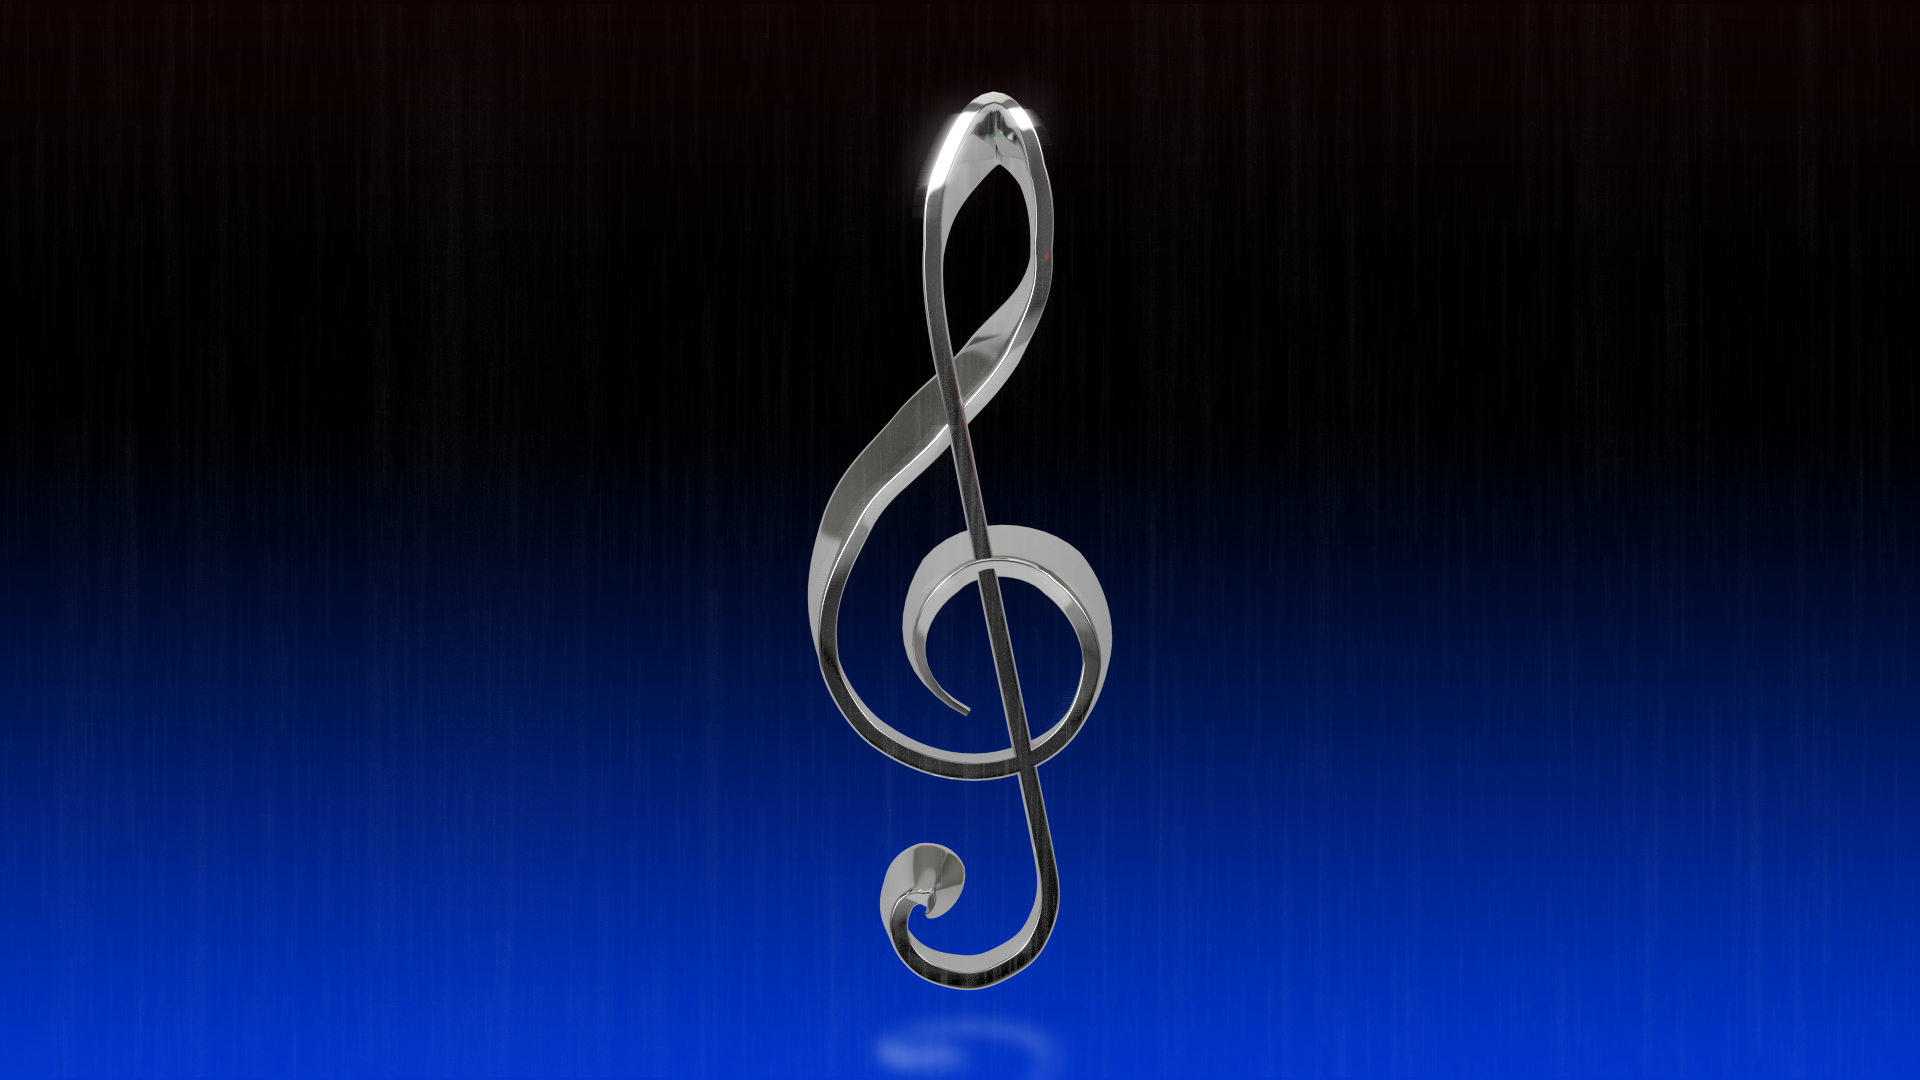 Treble Clef Wallpaper by TheBigDaveC